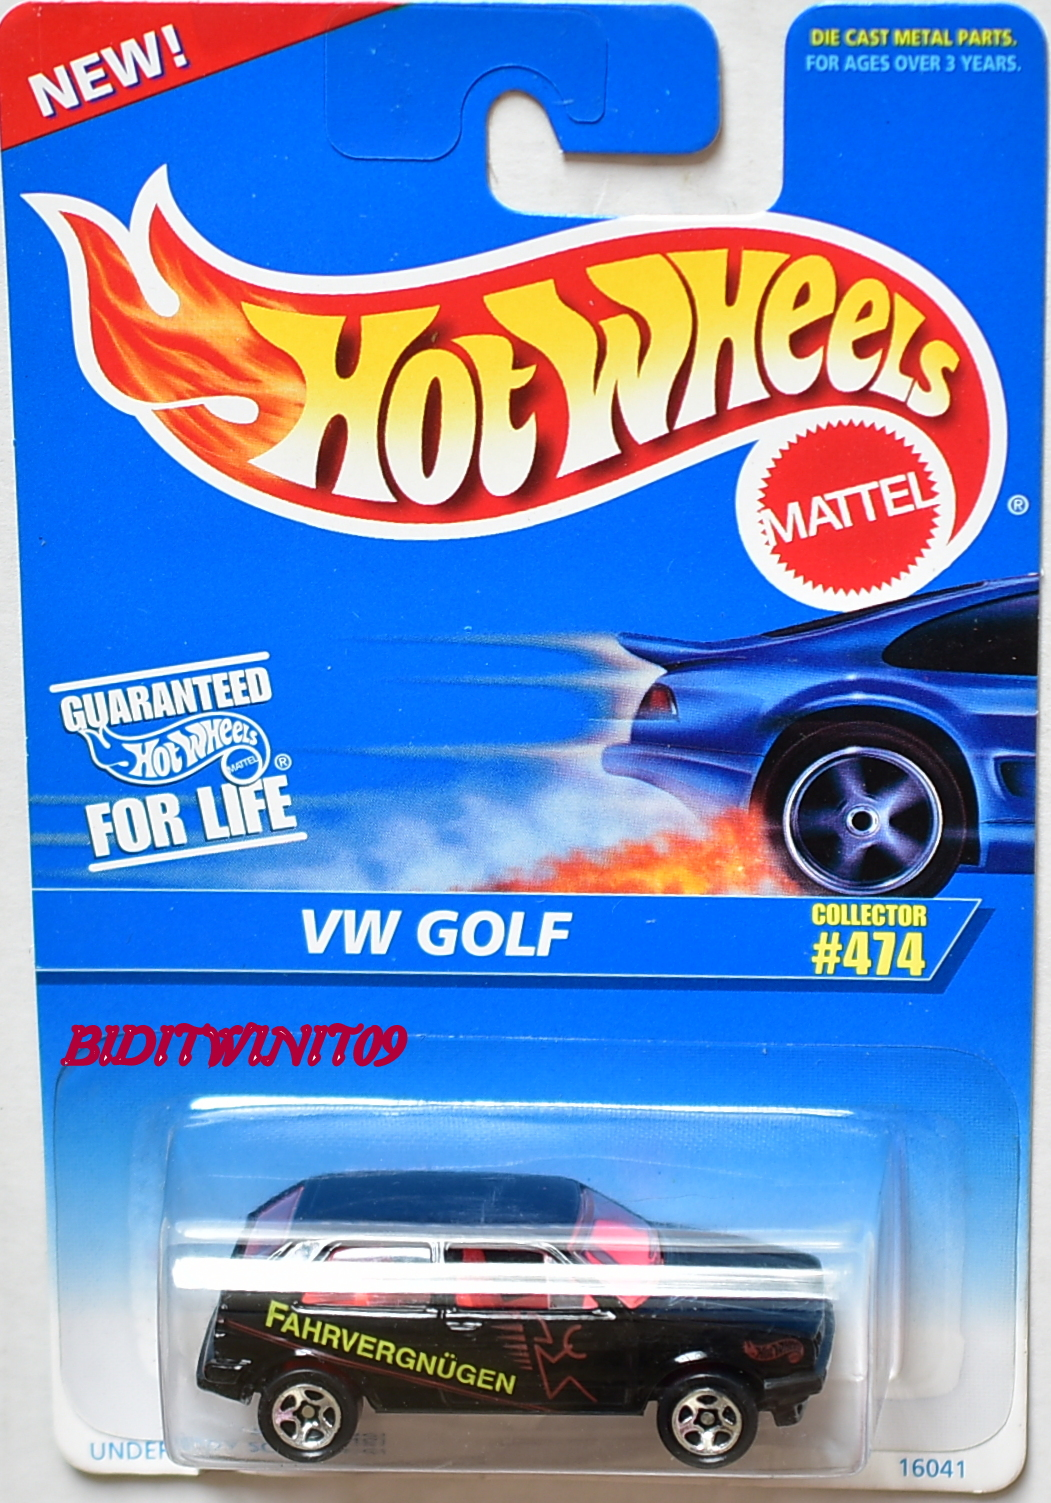 HOT WHEELS 1996 VW GOLF #474 W/ TAMPO